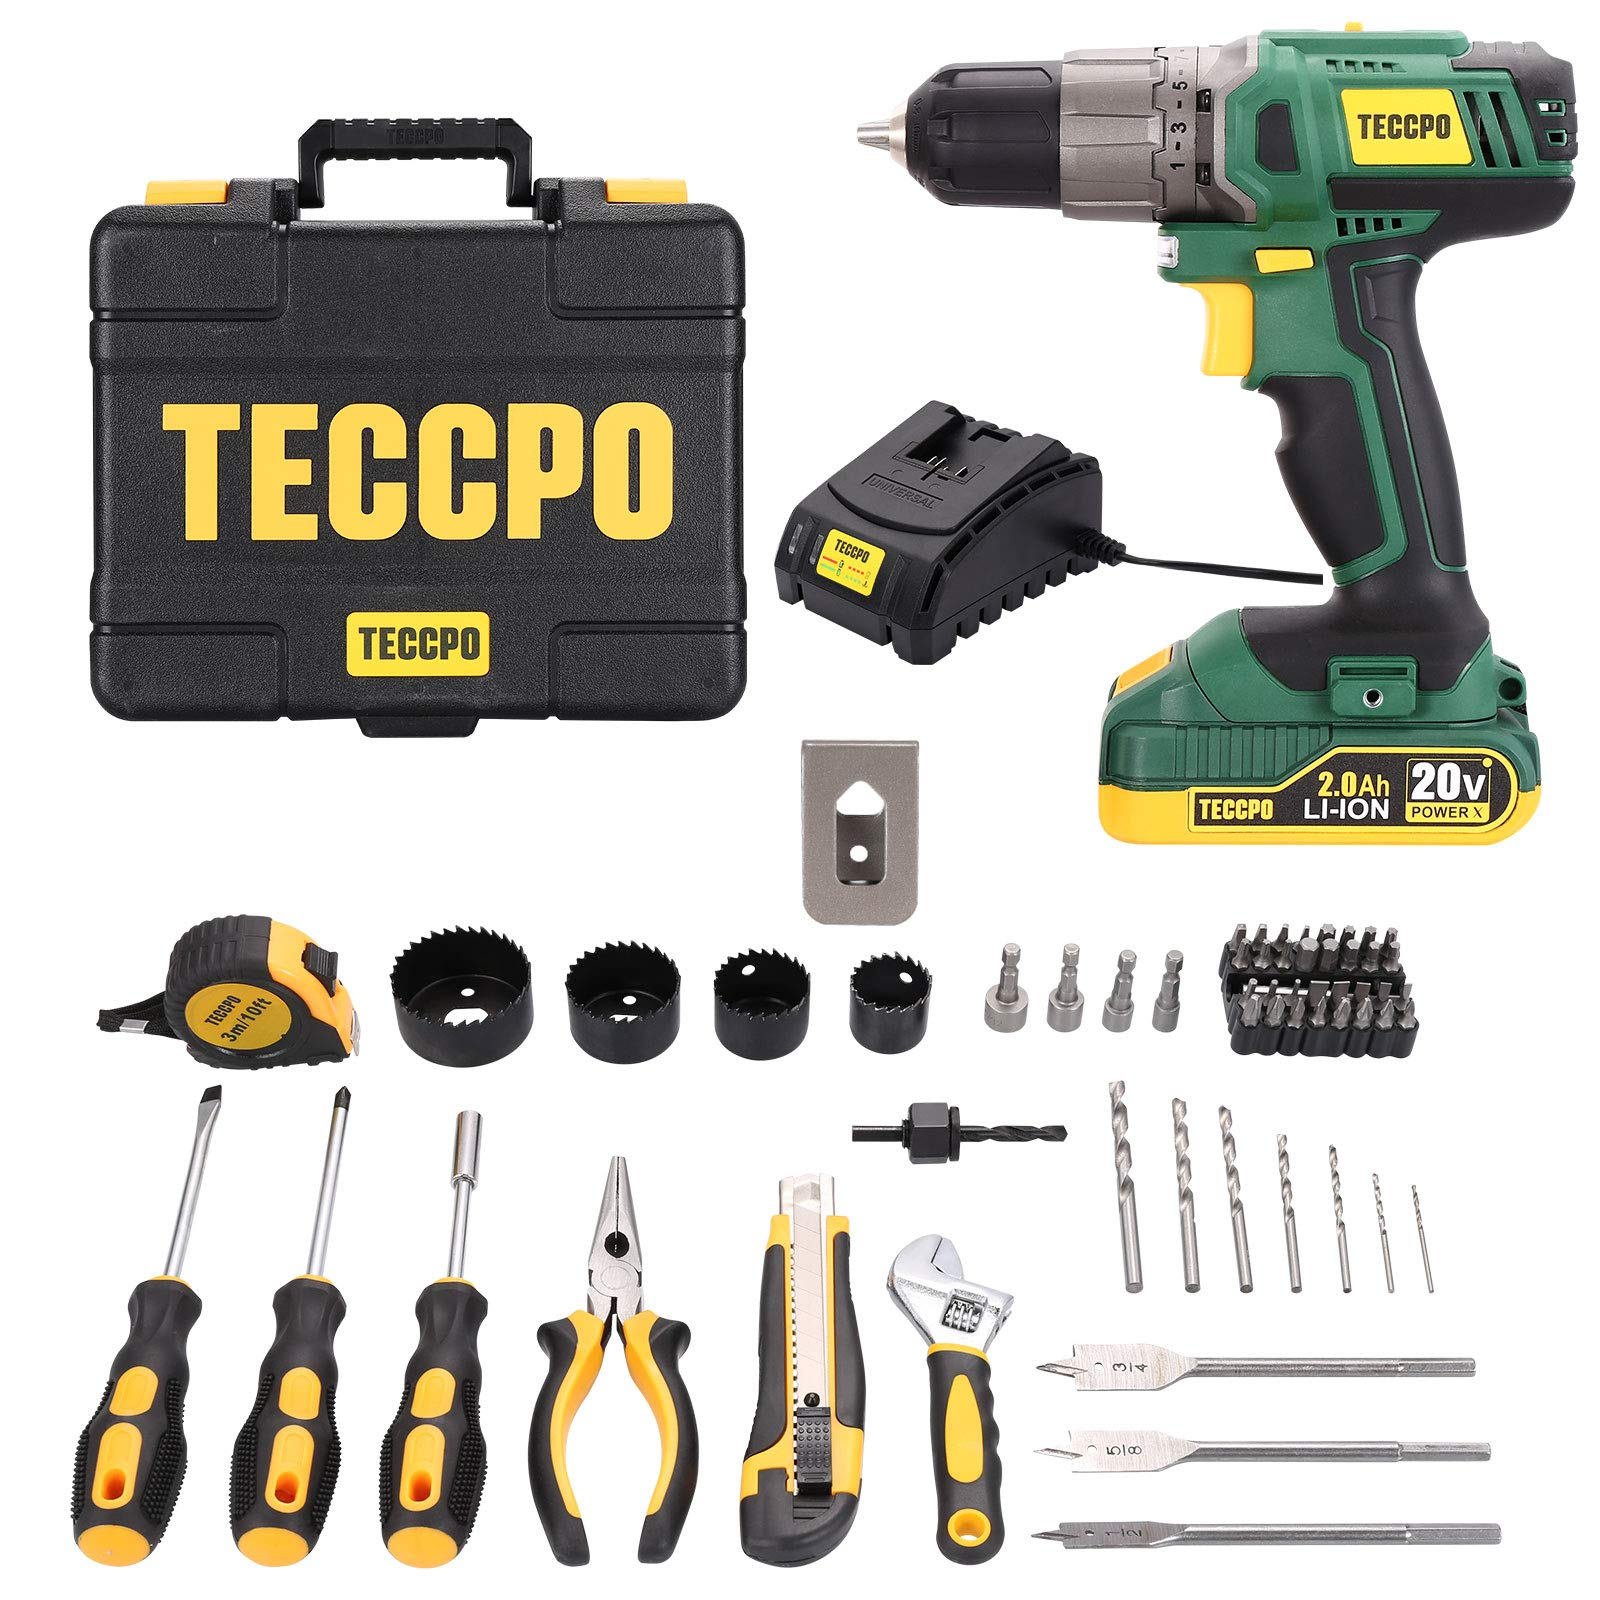 TECCPO Home Tool Kit & Drill, 63Pcs, 2.0Ah Battery and 1 Hour Fast Charger, Cordless Drill with 310 in-lbs Max Torque, 21+1 Clutch, Socket, Screwdriver, Wrench, Storage Toolbox - BHD100D